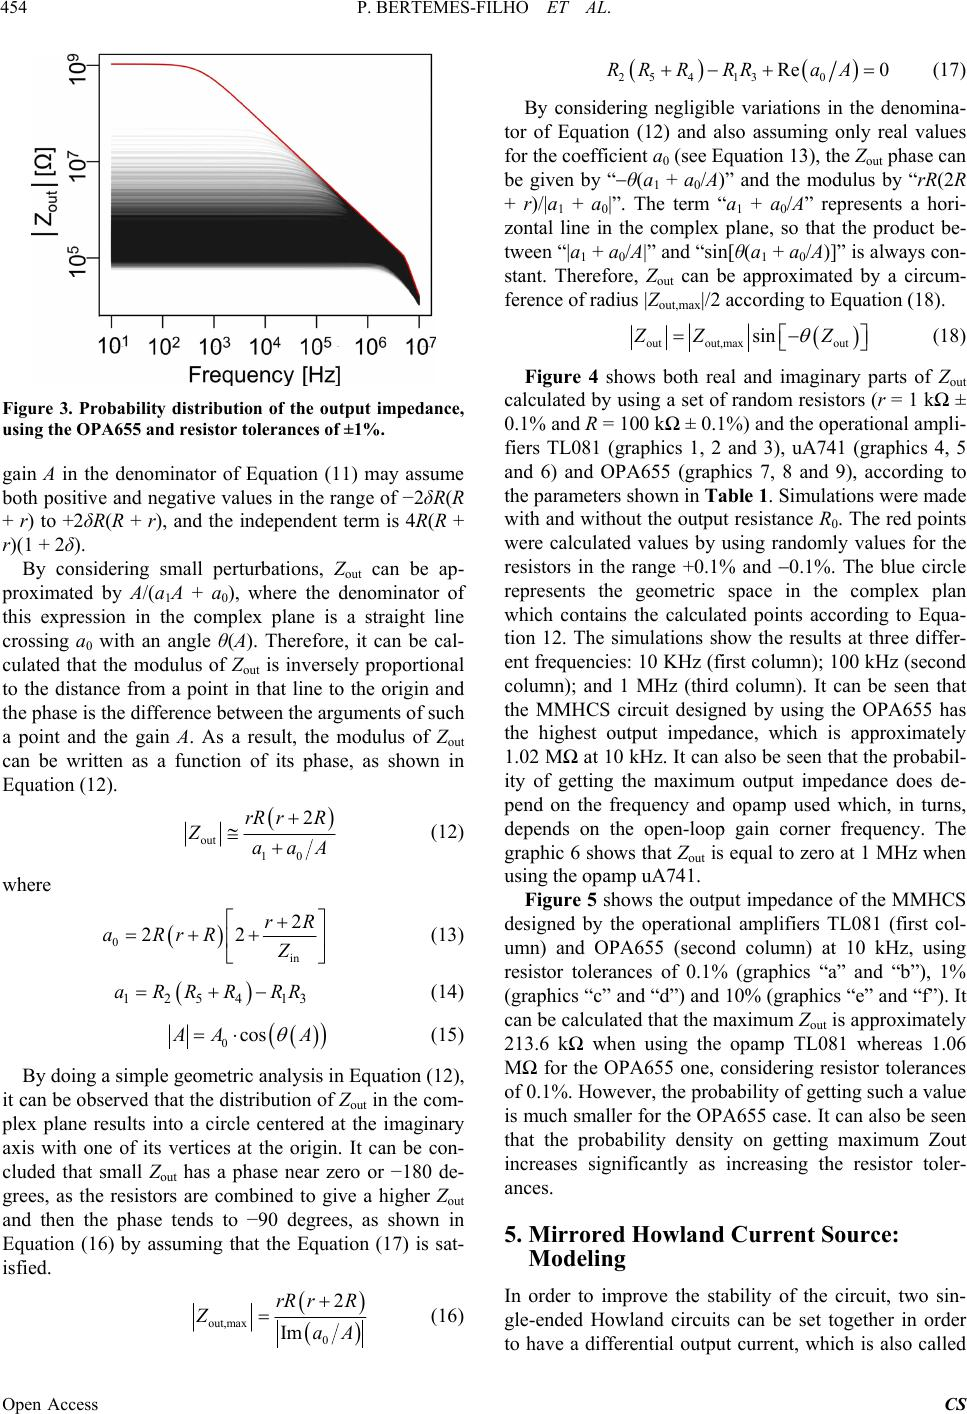 High Accurate Howland Current Source: Output Constraints ...  High Accurate H...